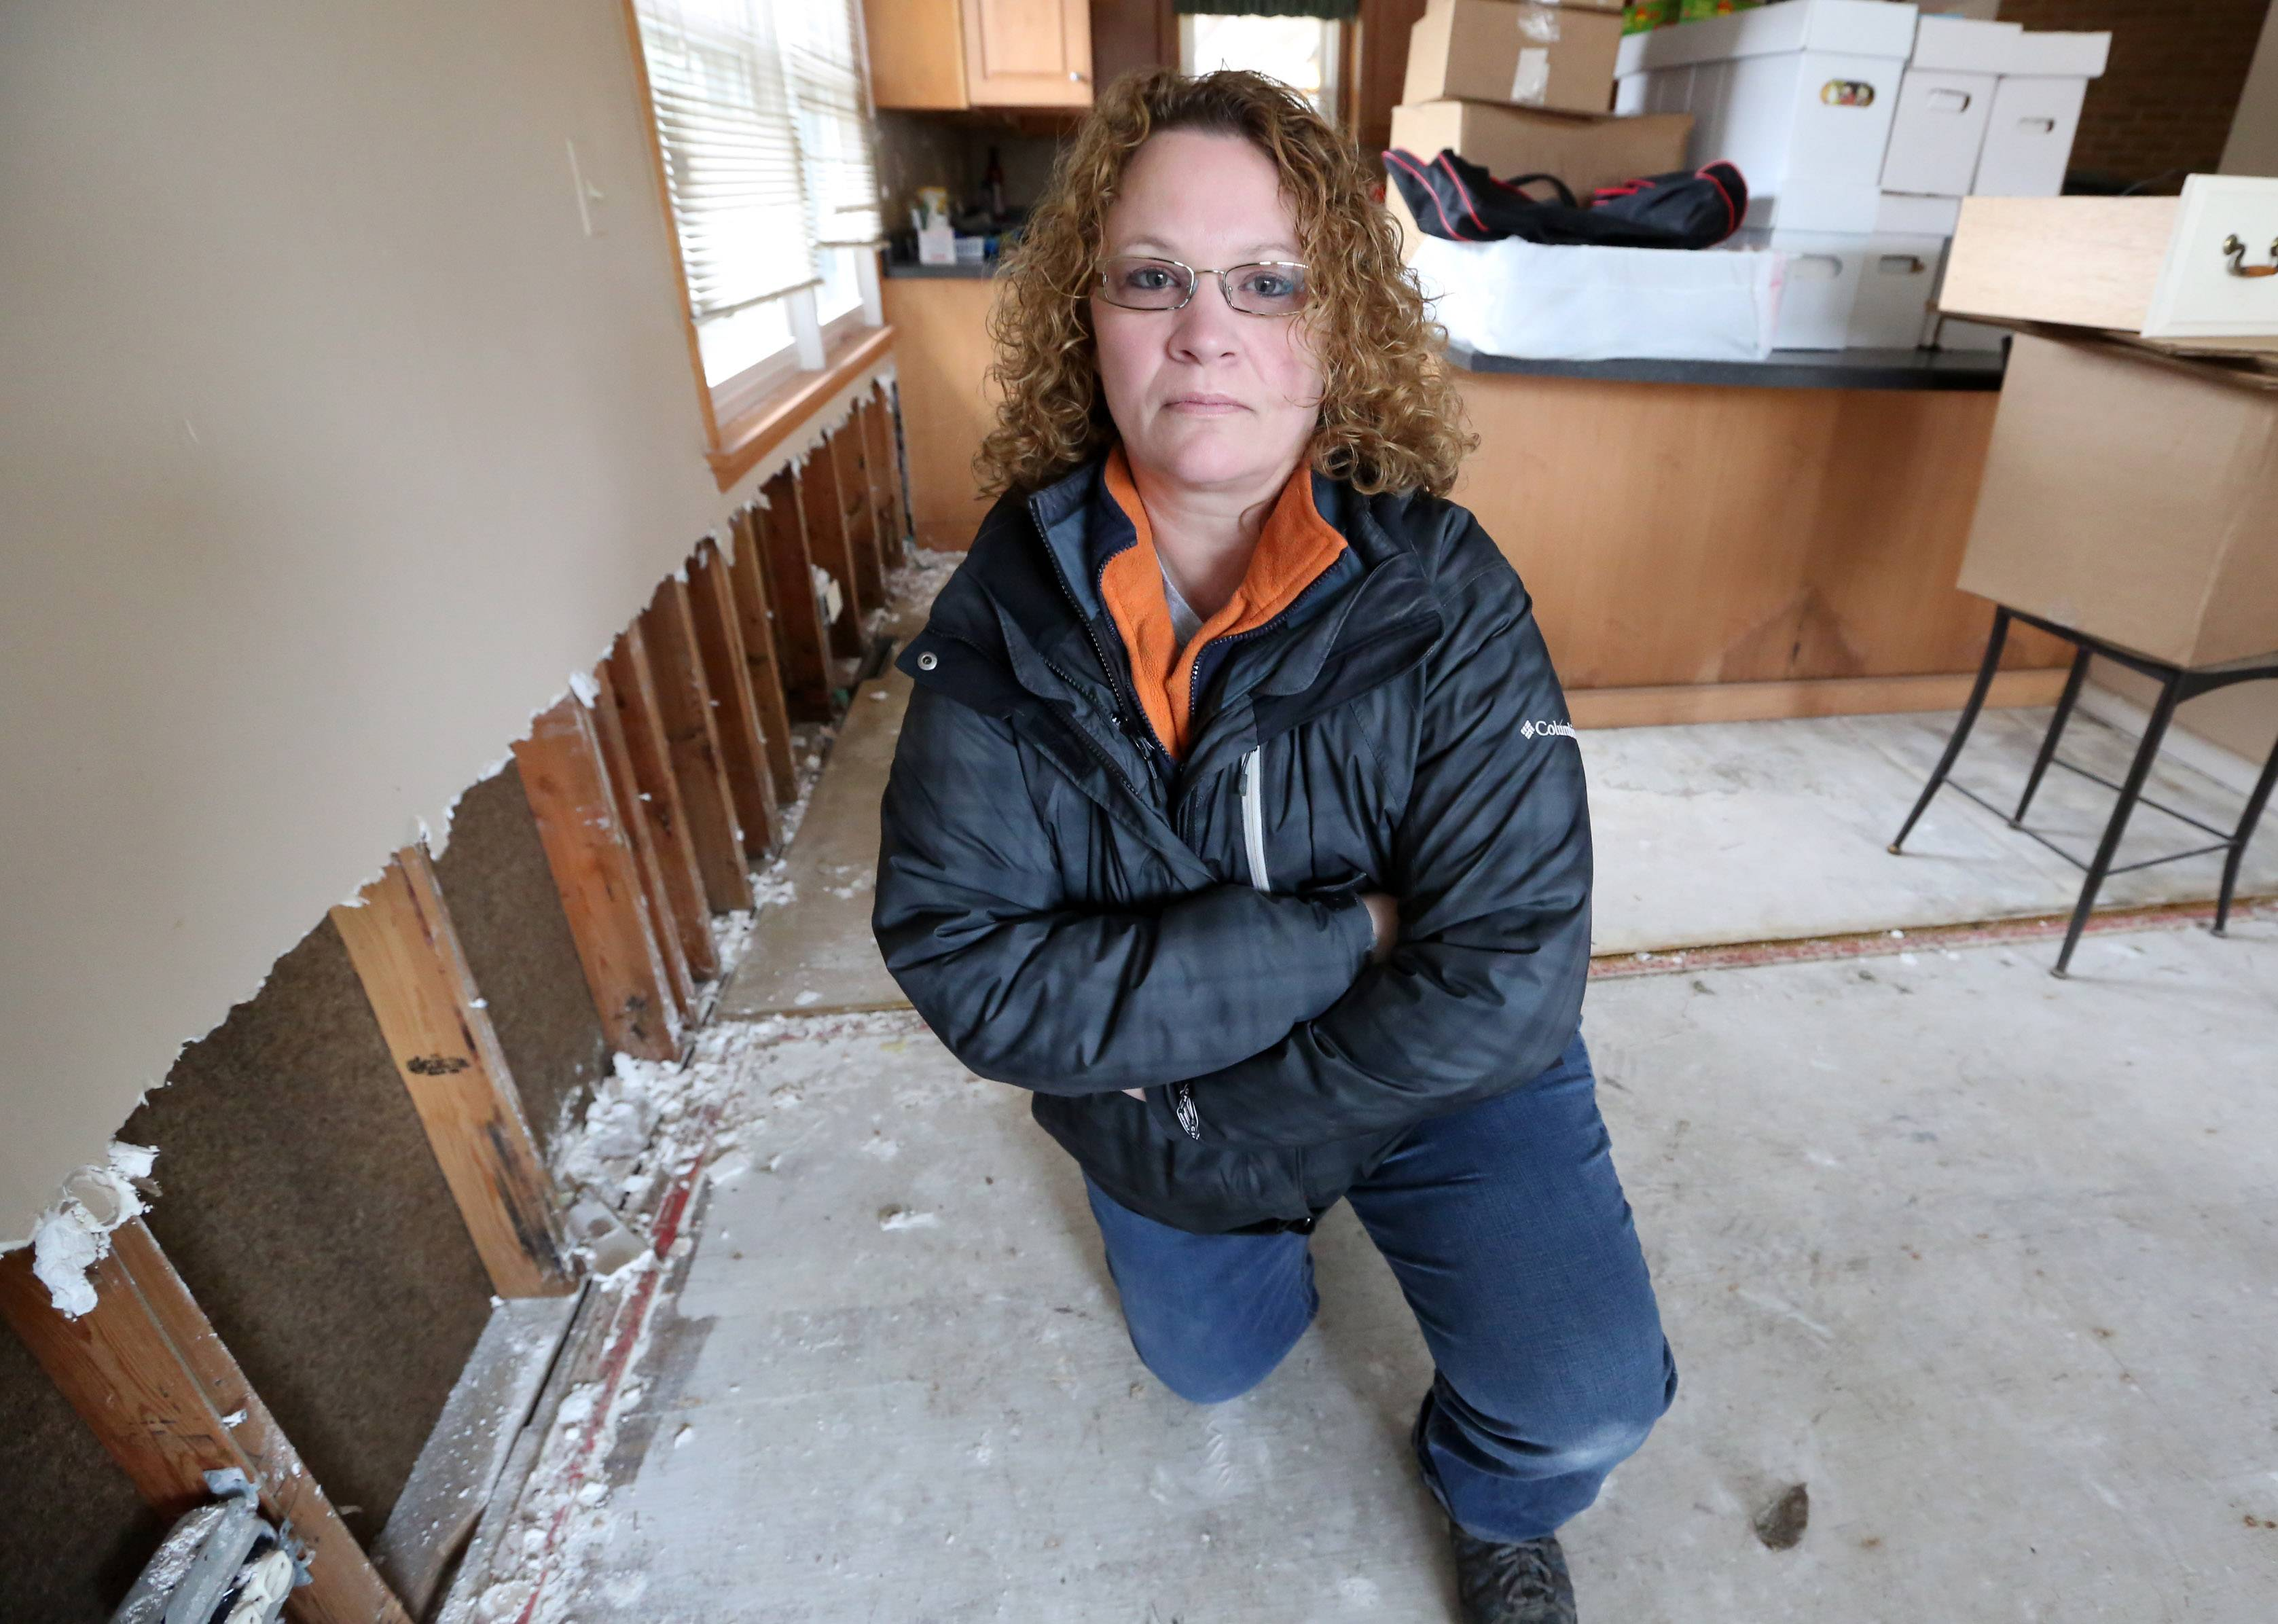 Heather Roppel stands in her flood-damaged Des Plaines home this week, a year after floods left the house under water and causing thousands of dollars worth of damage. Roppel's home is one of 21 in Des Plaines eligible for a federal buyout.